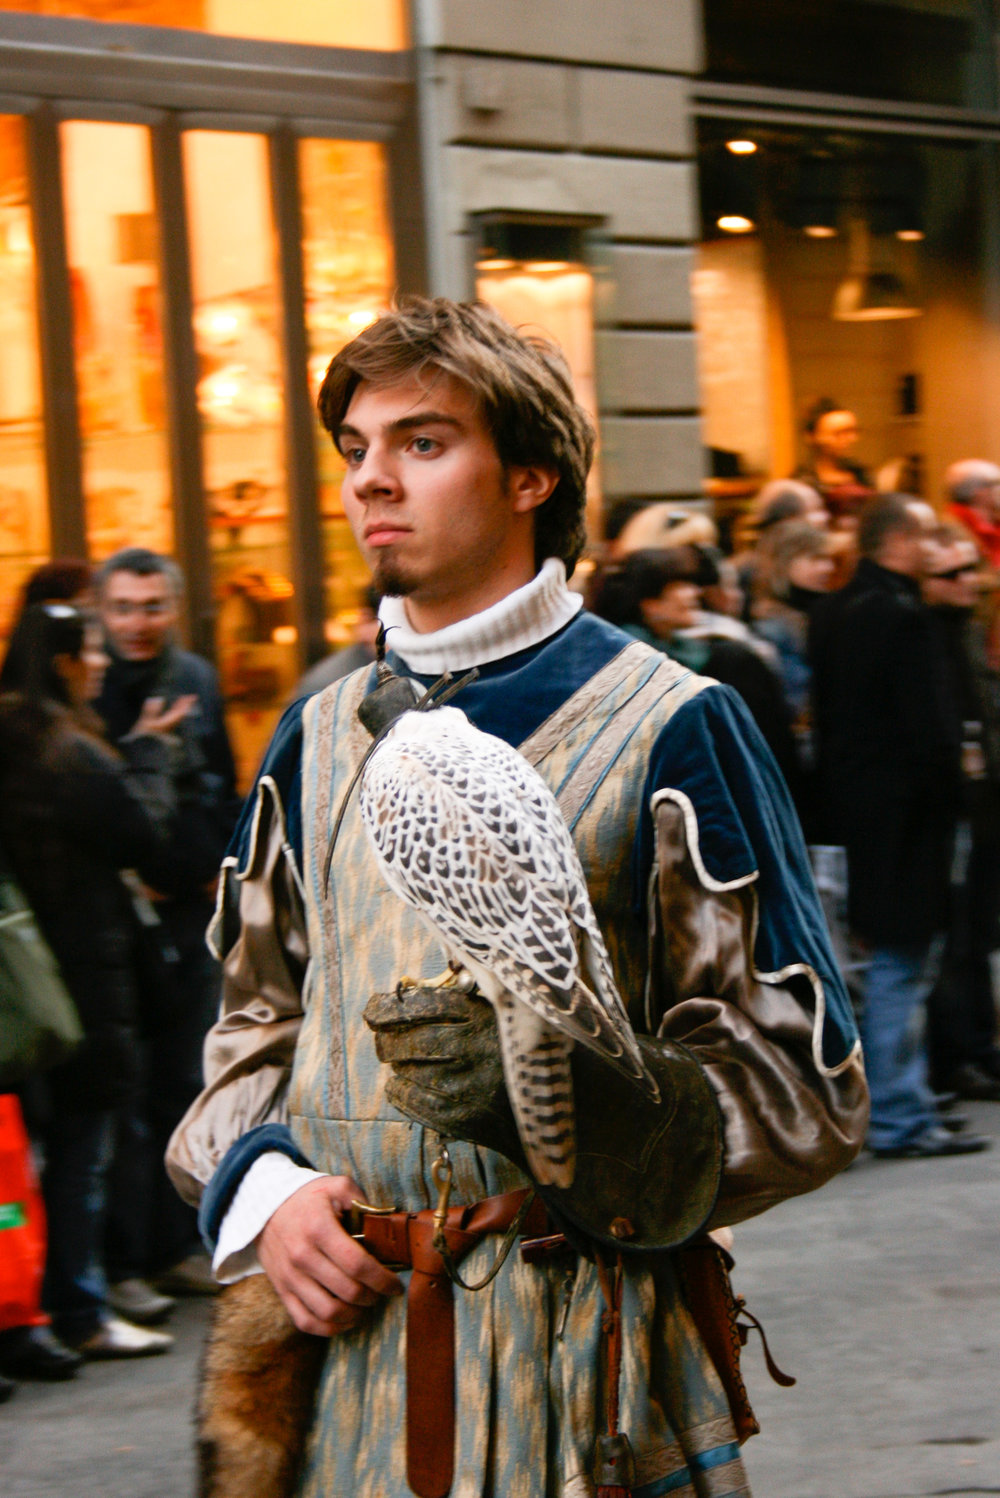 A falconer in Florence's Renaissance-style parade